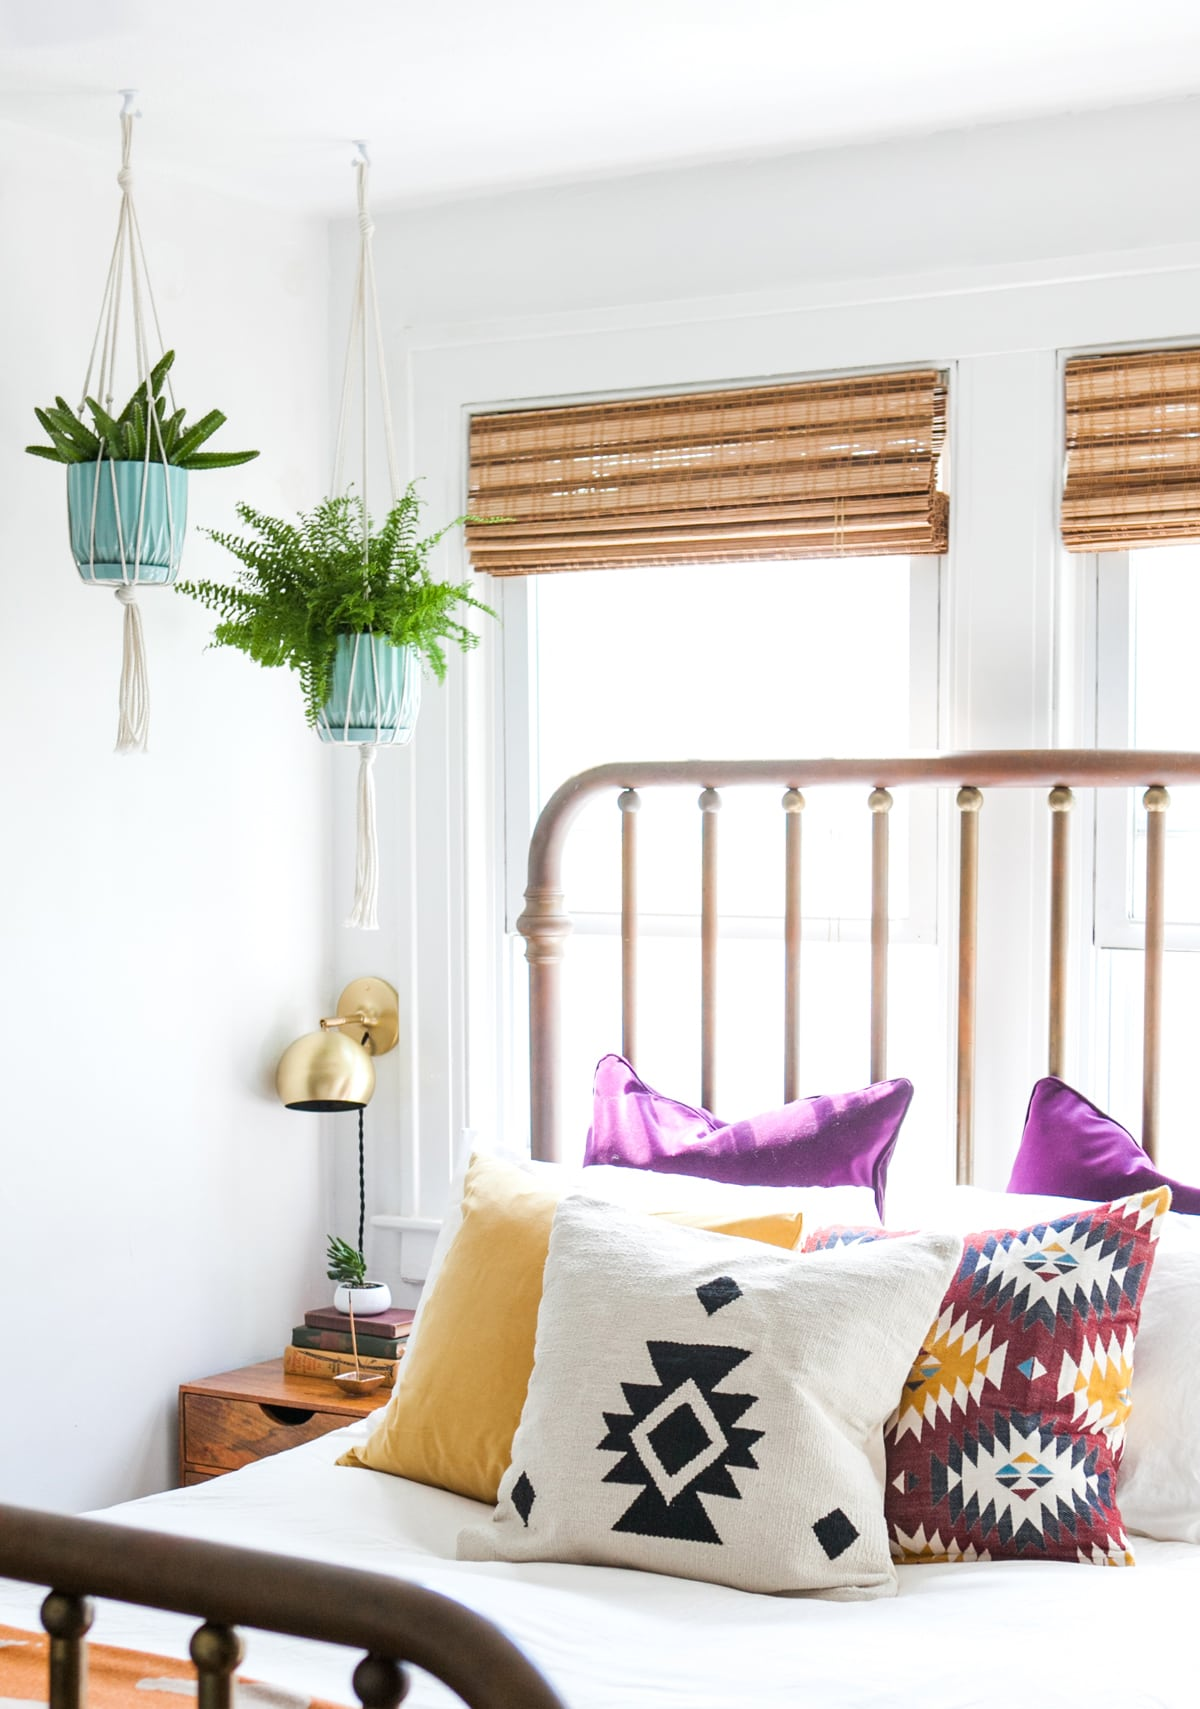 DIY Macrame Plant Hanger | How To | Hanging Plants | Jessica Brigham | Magazine Ready for Life